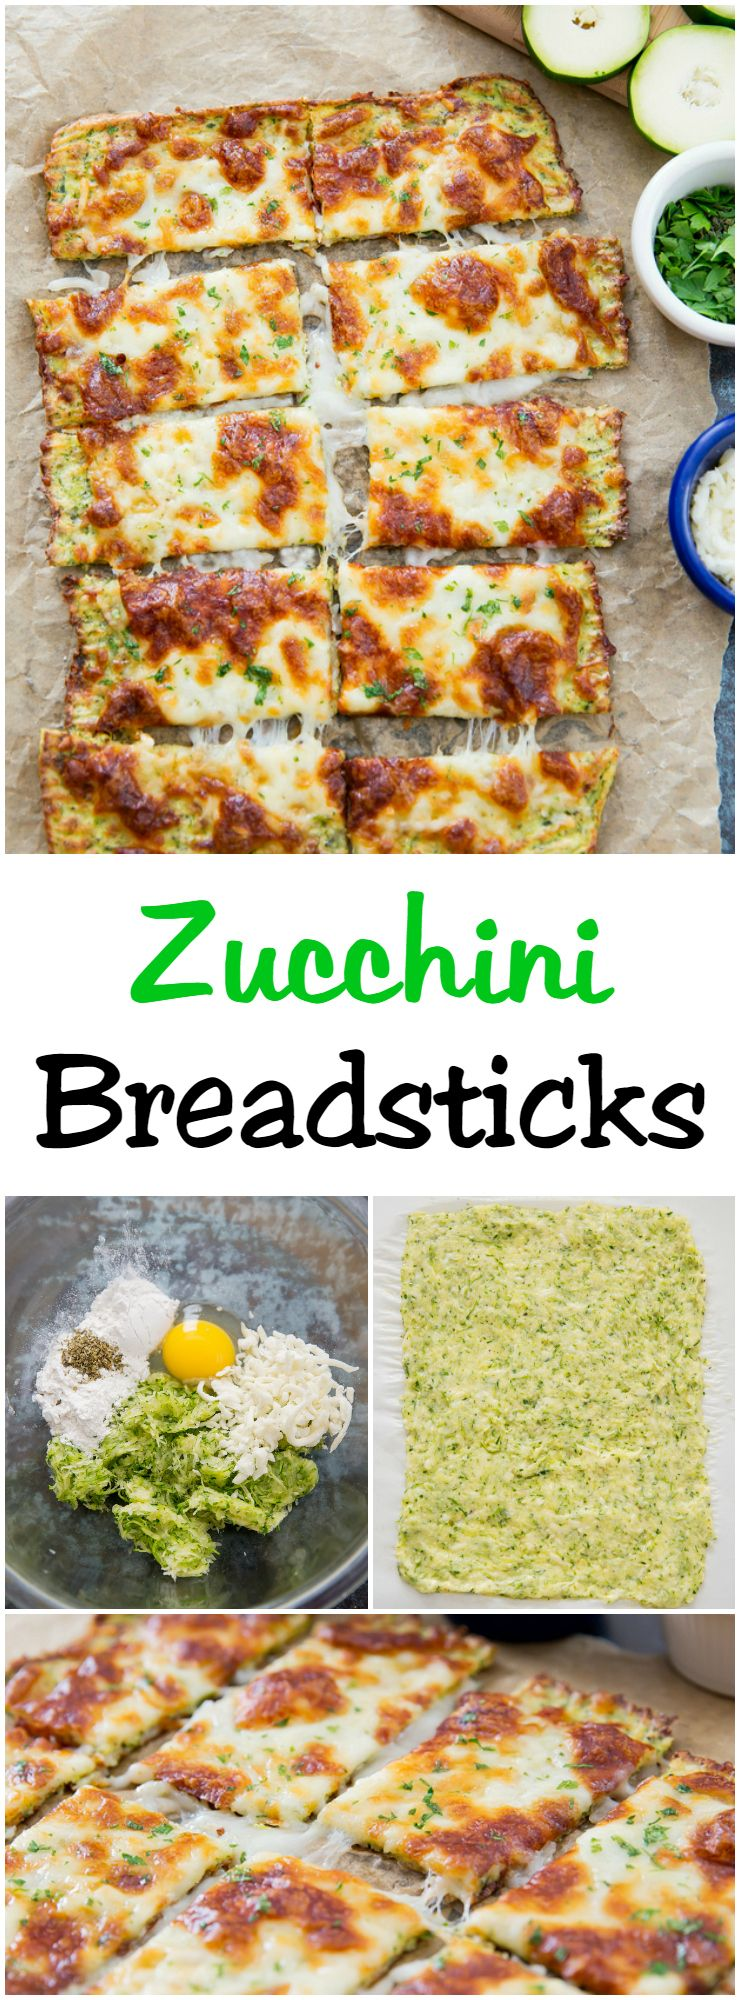 Photo of Zucchini Breadsticks